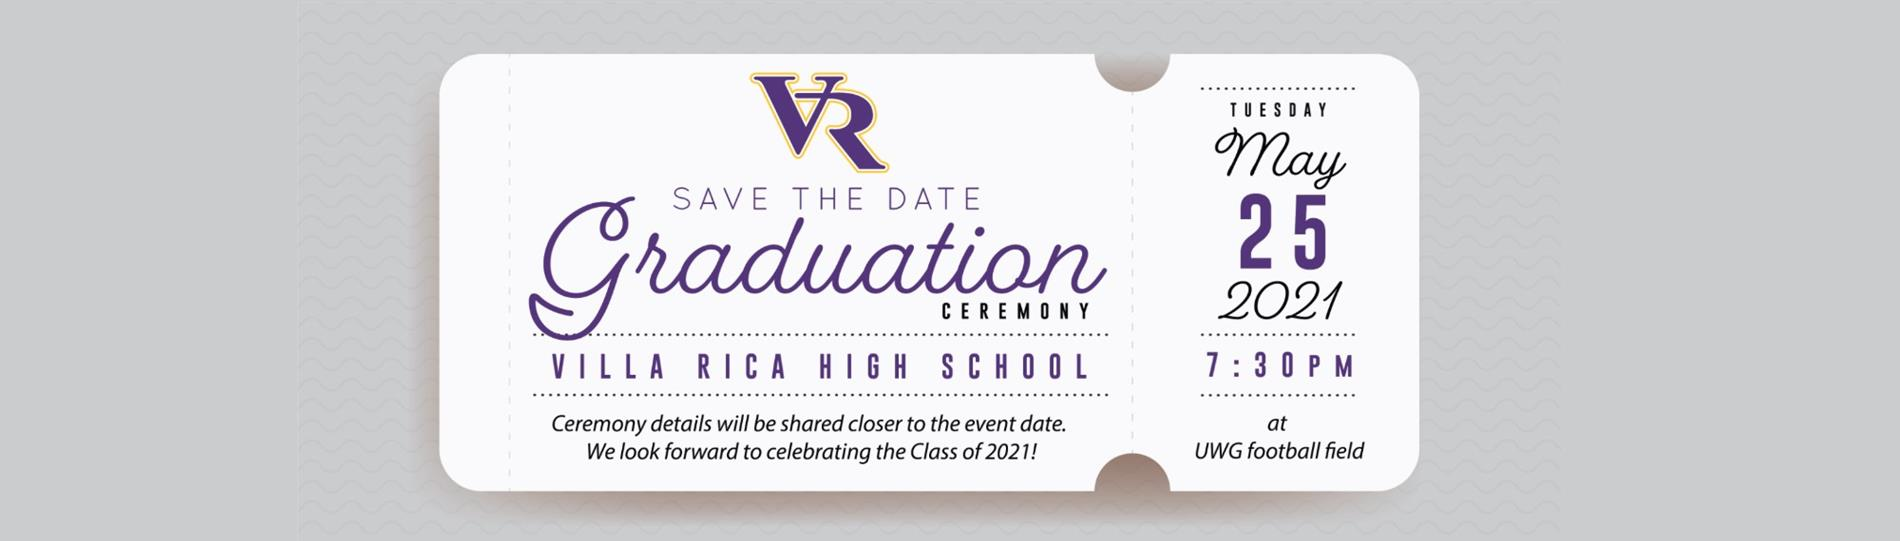 Picture of Graduation Save the Date - May 25